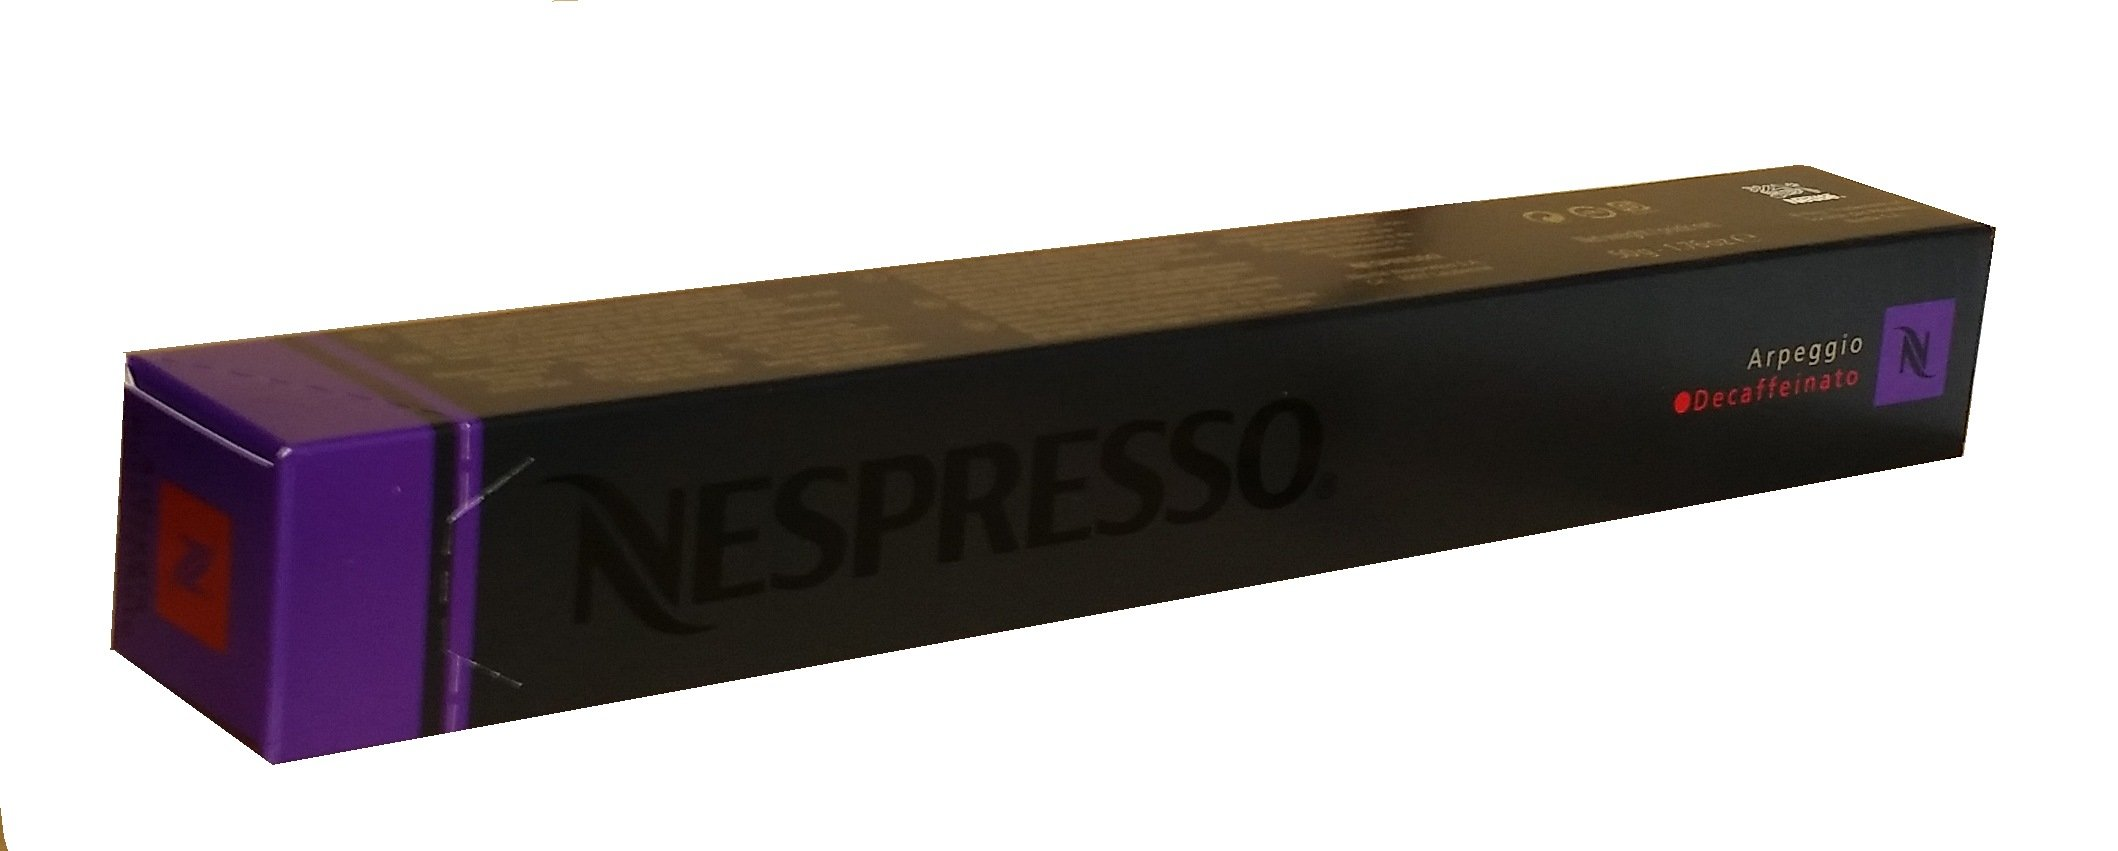 Nespresso Original Decaffeinato coffee pods and capsules (a cocoa notes, fruit notes, intense coffee with aromas of dried fruit and chocolate, fresh fruit and petals)